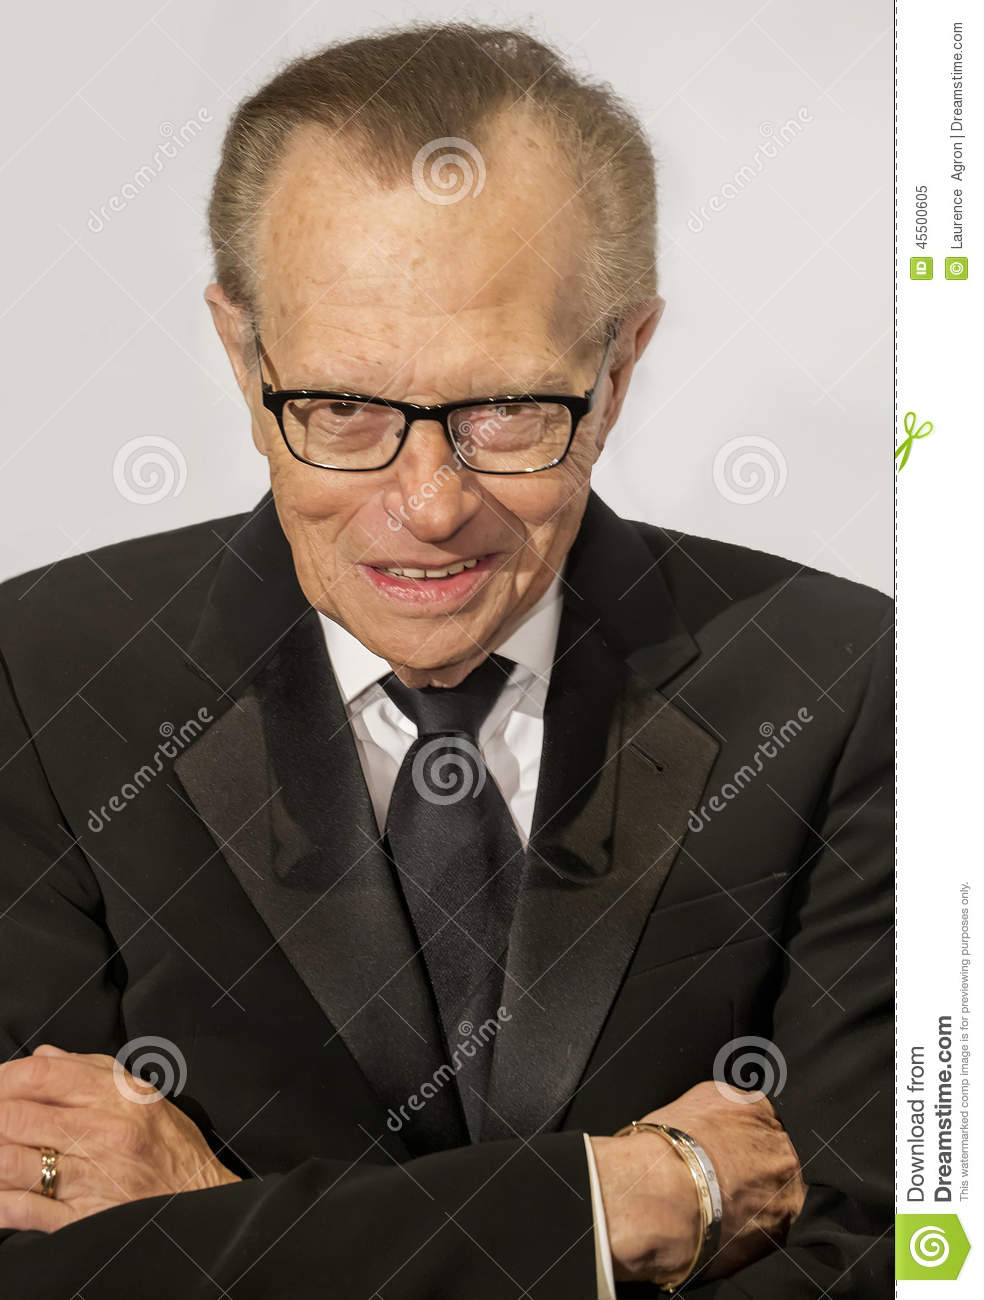 <b>...</b> présentateur de talk-show par radio <b>Larry King</b> arrive sur le tapis rouge <b>...</b> - larry-king-45500605